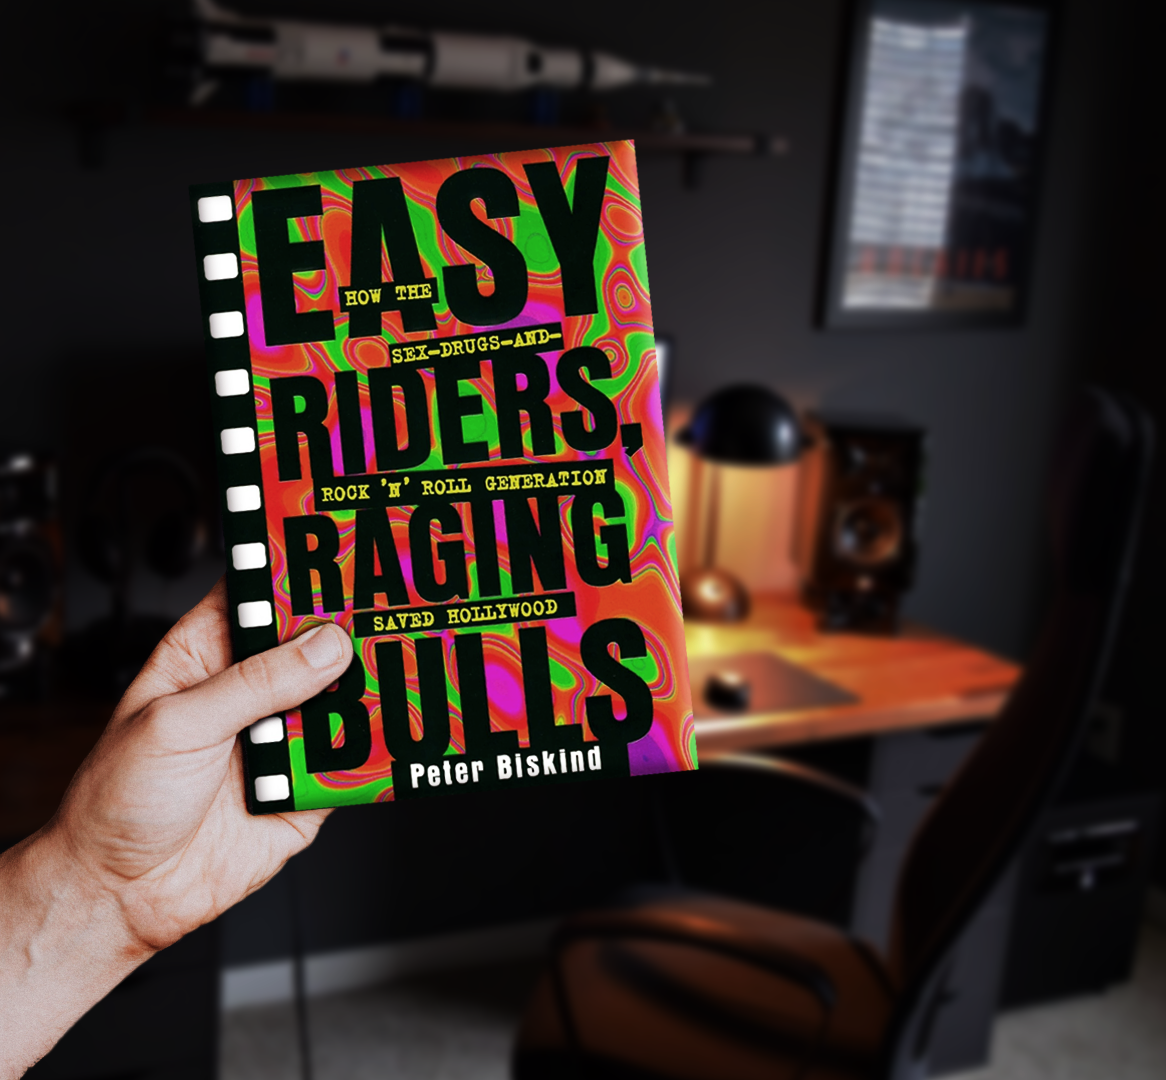 easy rider raging bull book scorsese spielberg george lucas star wars the godfathter cinema film book hollywood movie brats